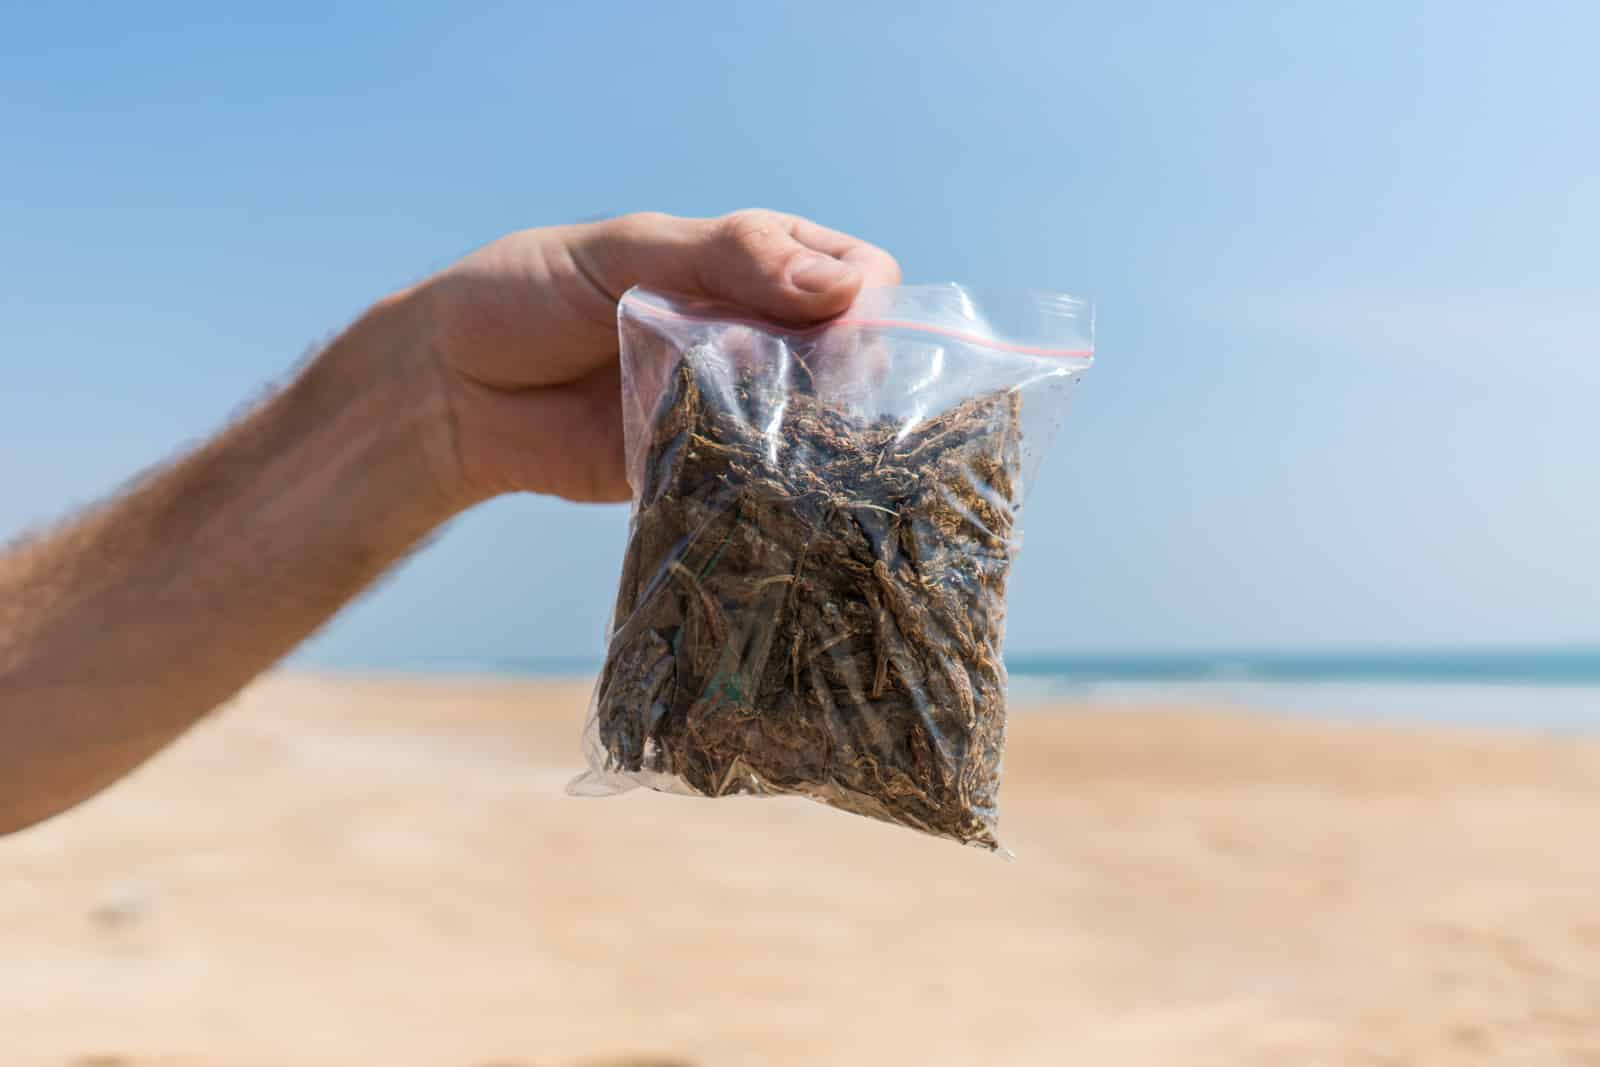 Guide to cannabis in India - 100 grams of weed in a bag on the beach in Puri, Odisha - Lost With Purpose travel blog